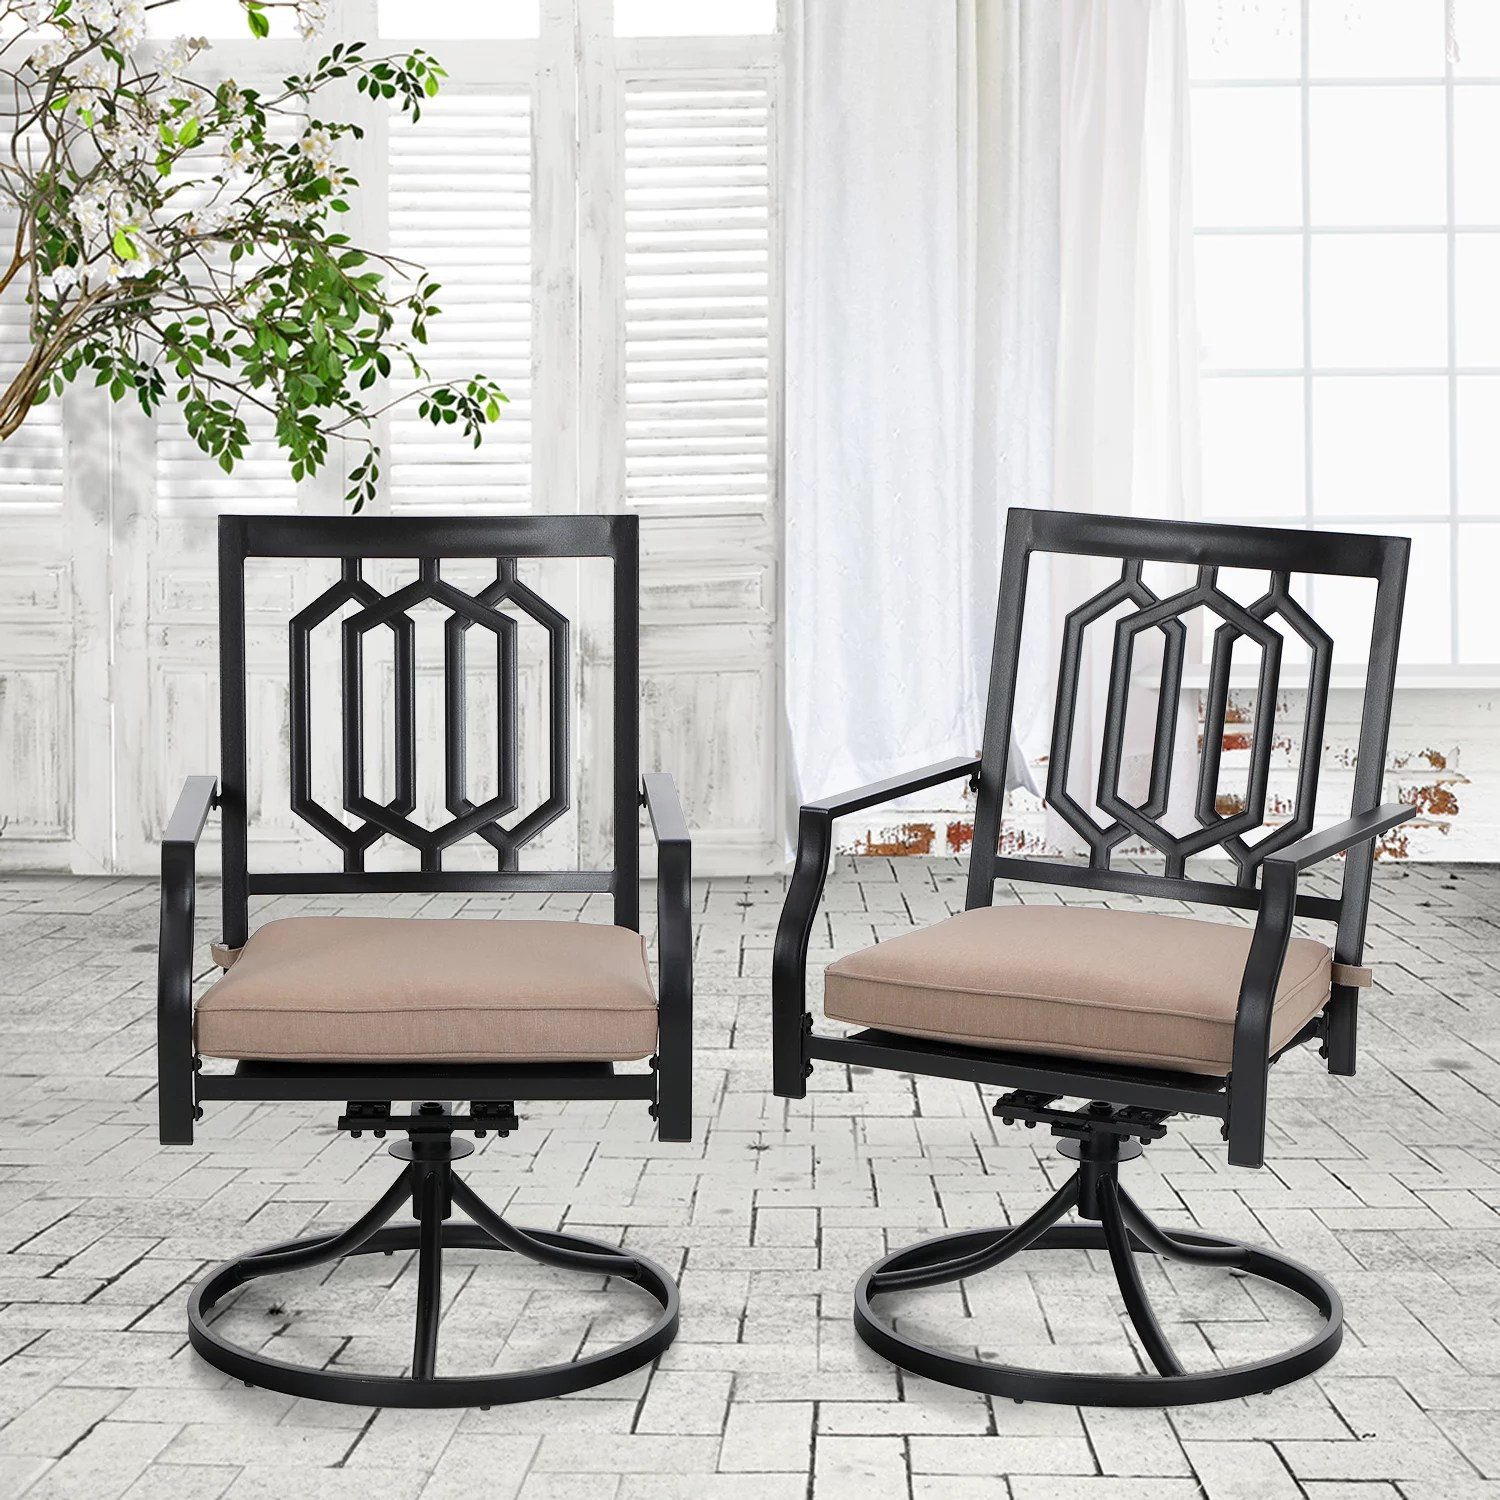 mf studio outdoor metal swivel chairs set of 2 patio dining rocker chair with cushion furniture set support 300 lbs for garden backyard bistro